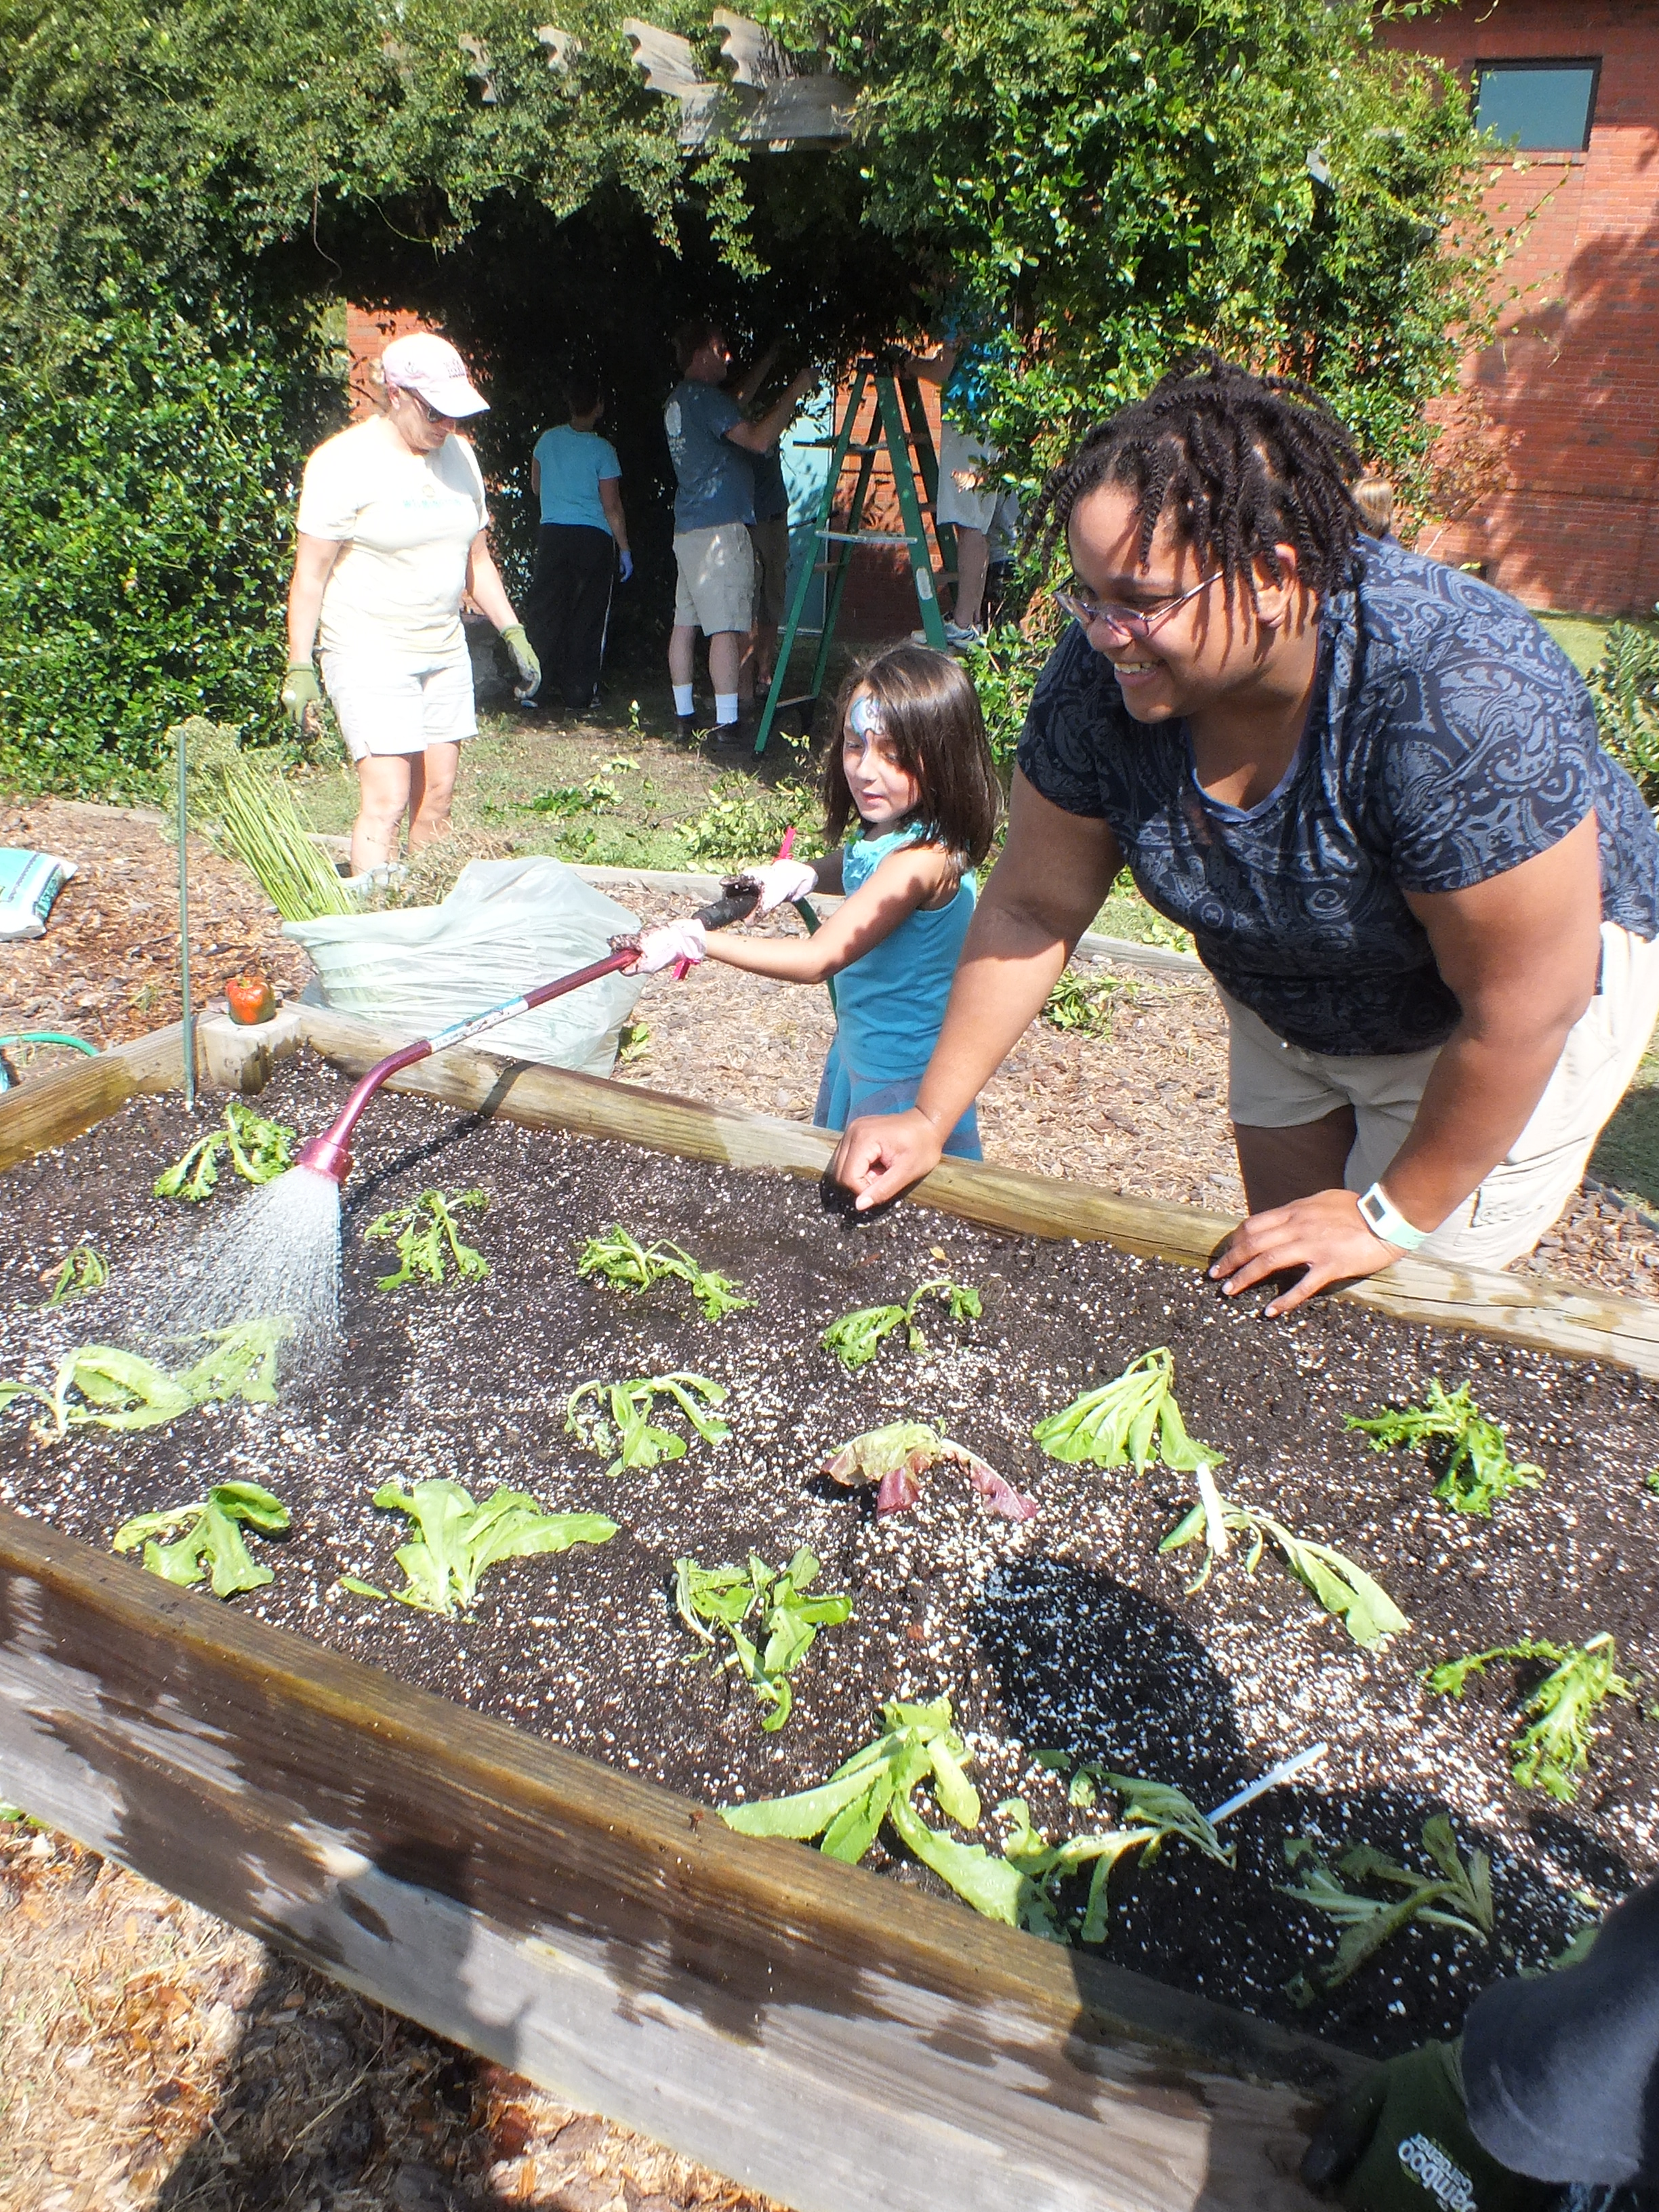 Whole foods helps winter park garden grow port city daily for Winter gardens elementary school